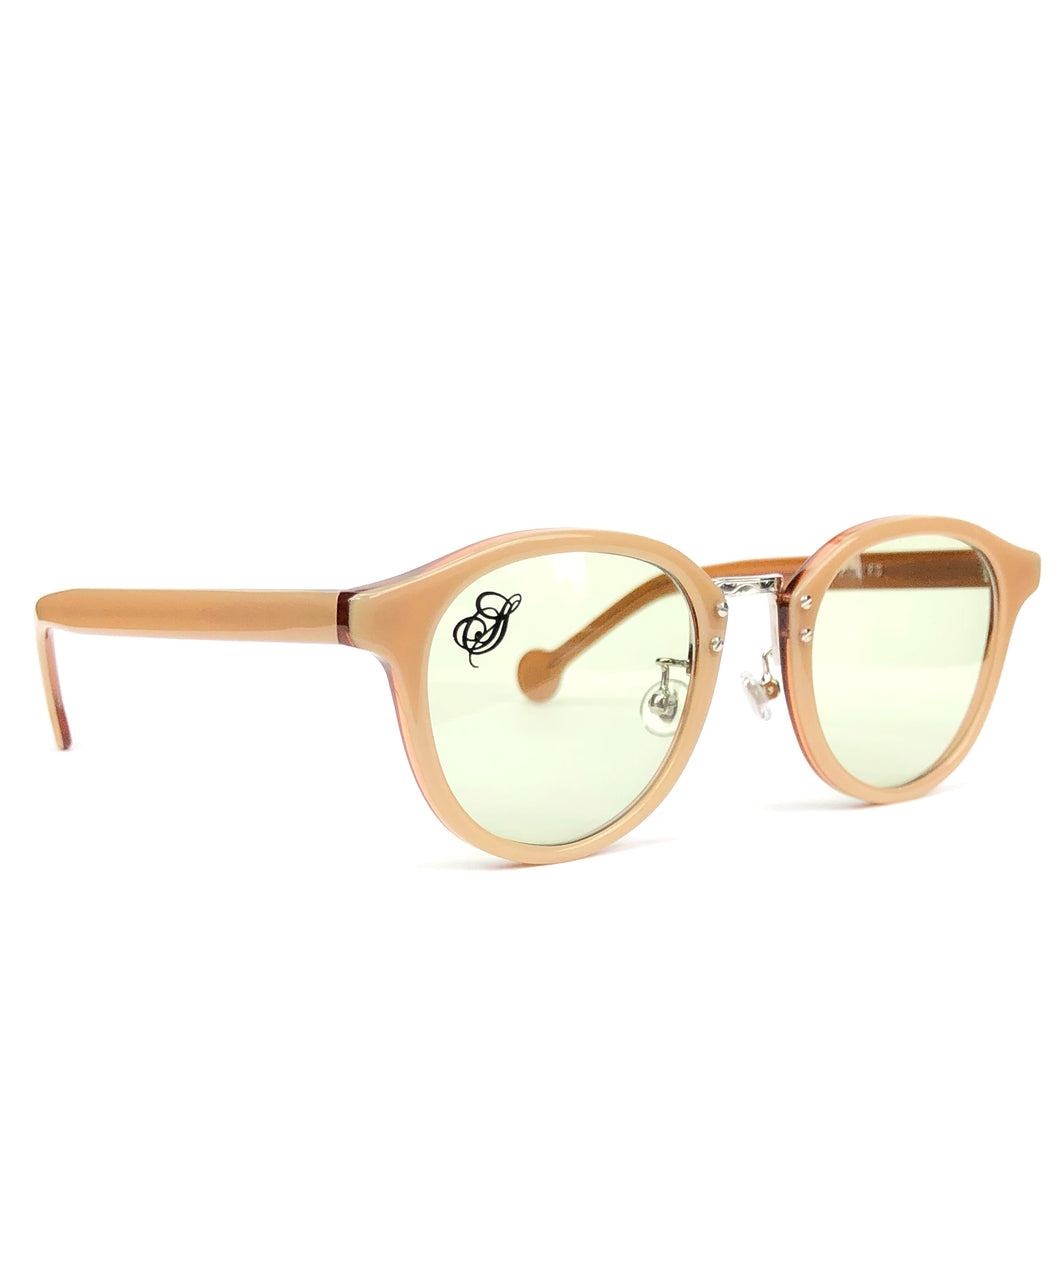 Session by STRUM Special Order Sunglasses / Beige